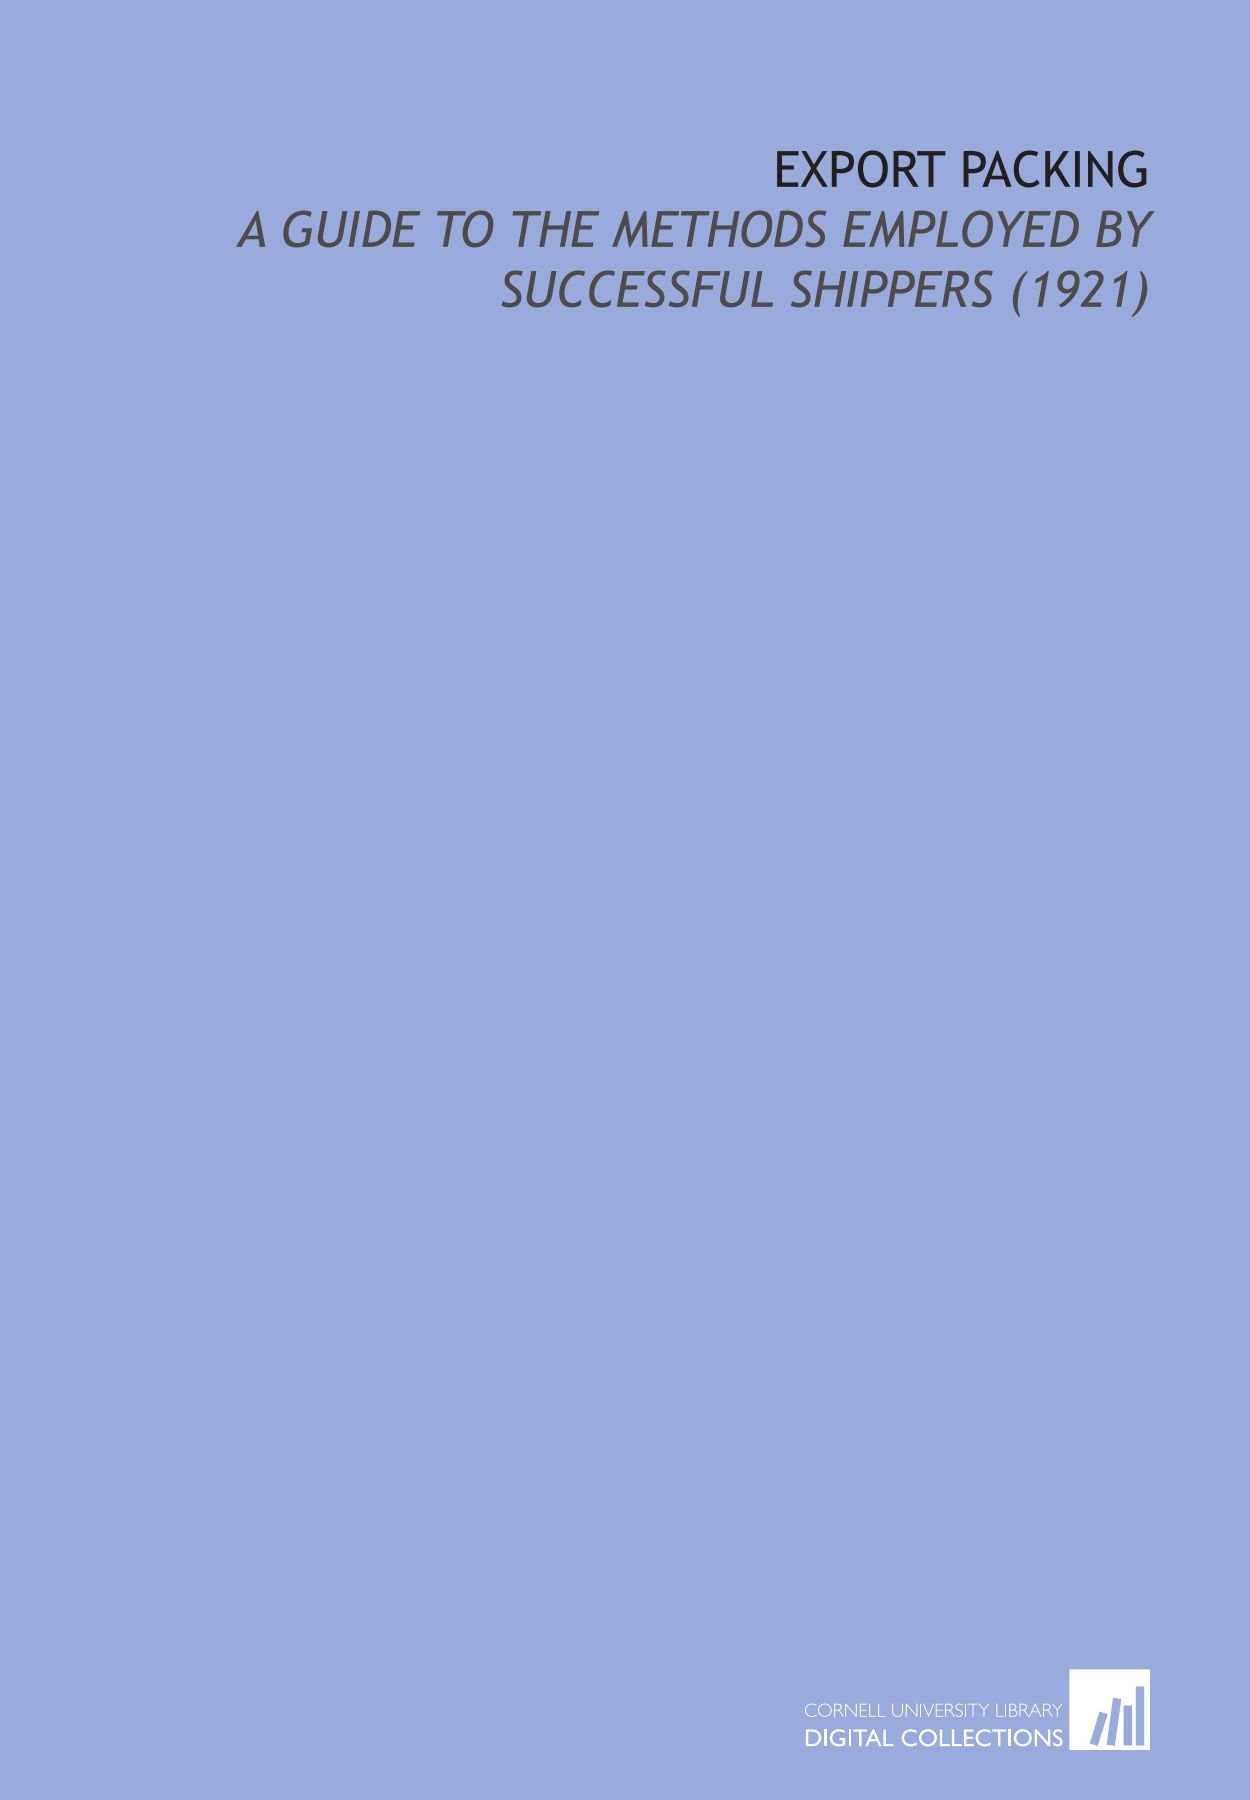 Export Packing: A Guide to the Methods Employed By Successful Shippers (1921) pdf